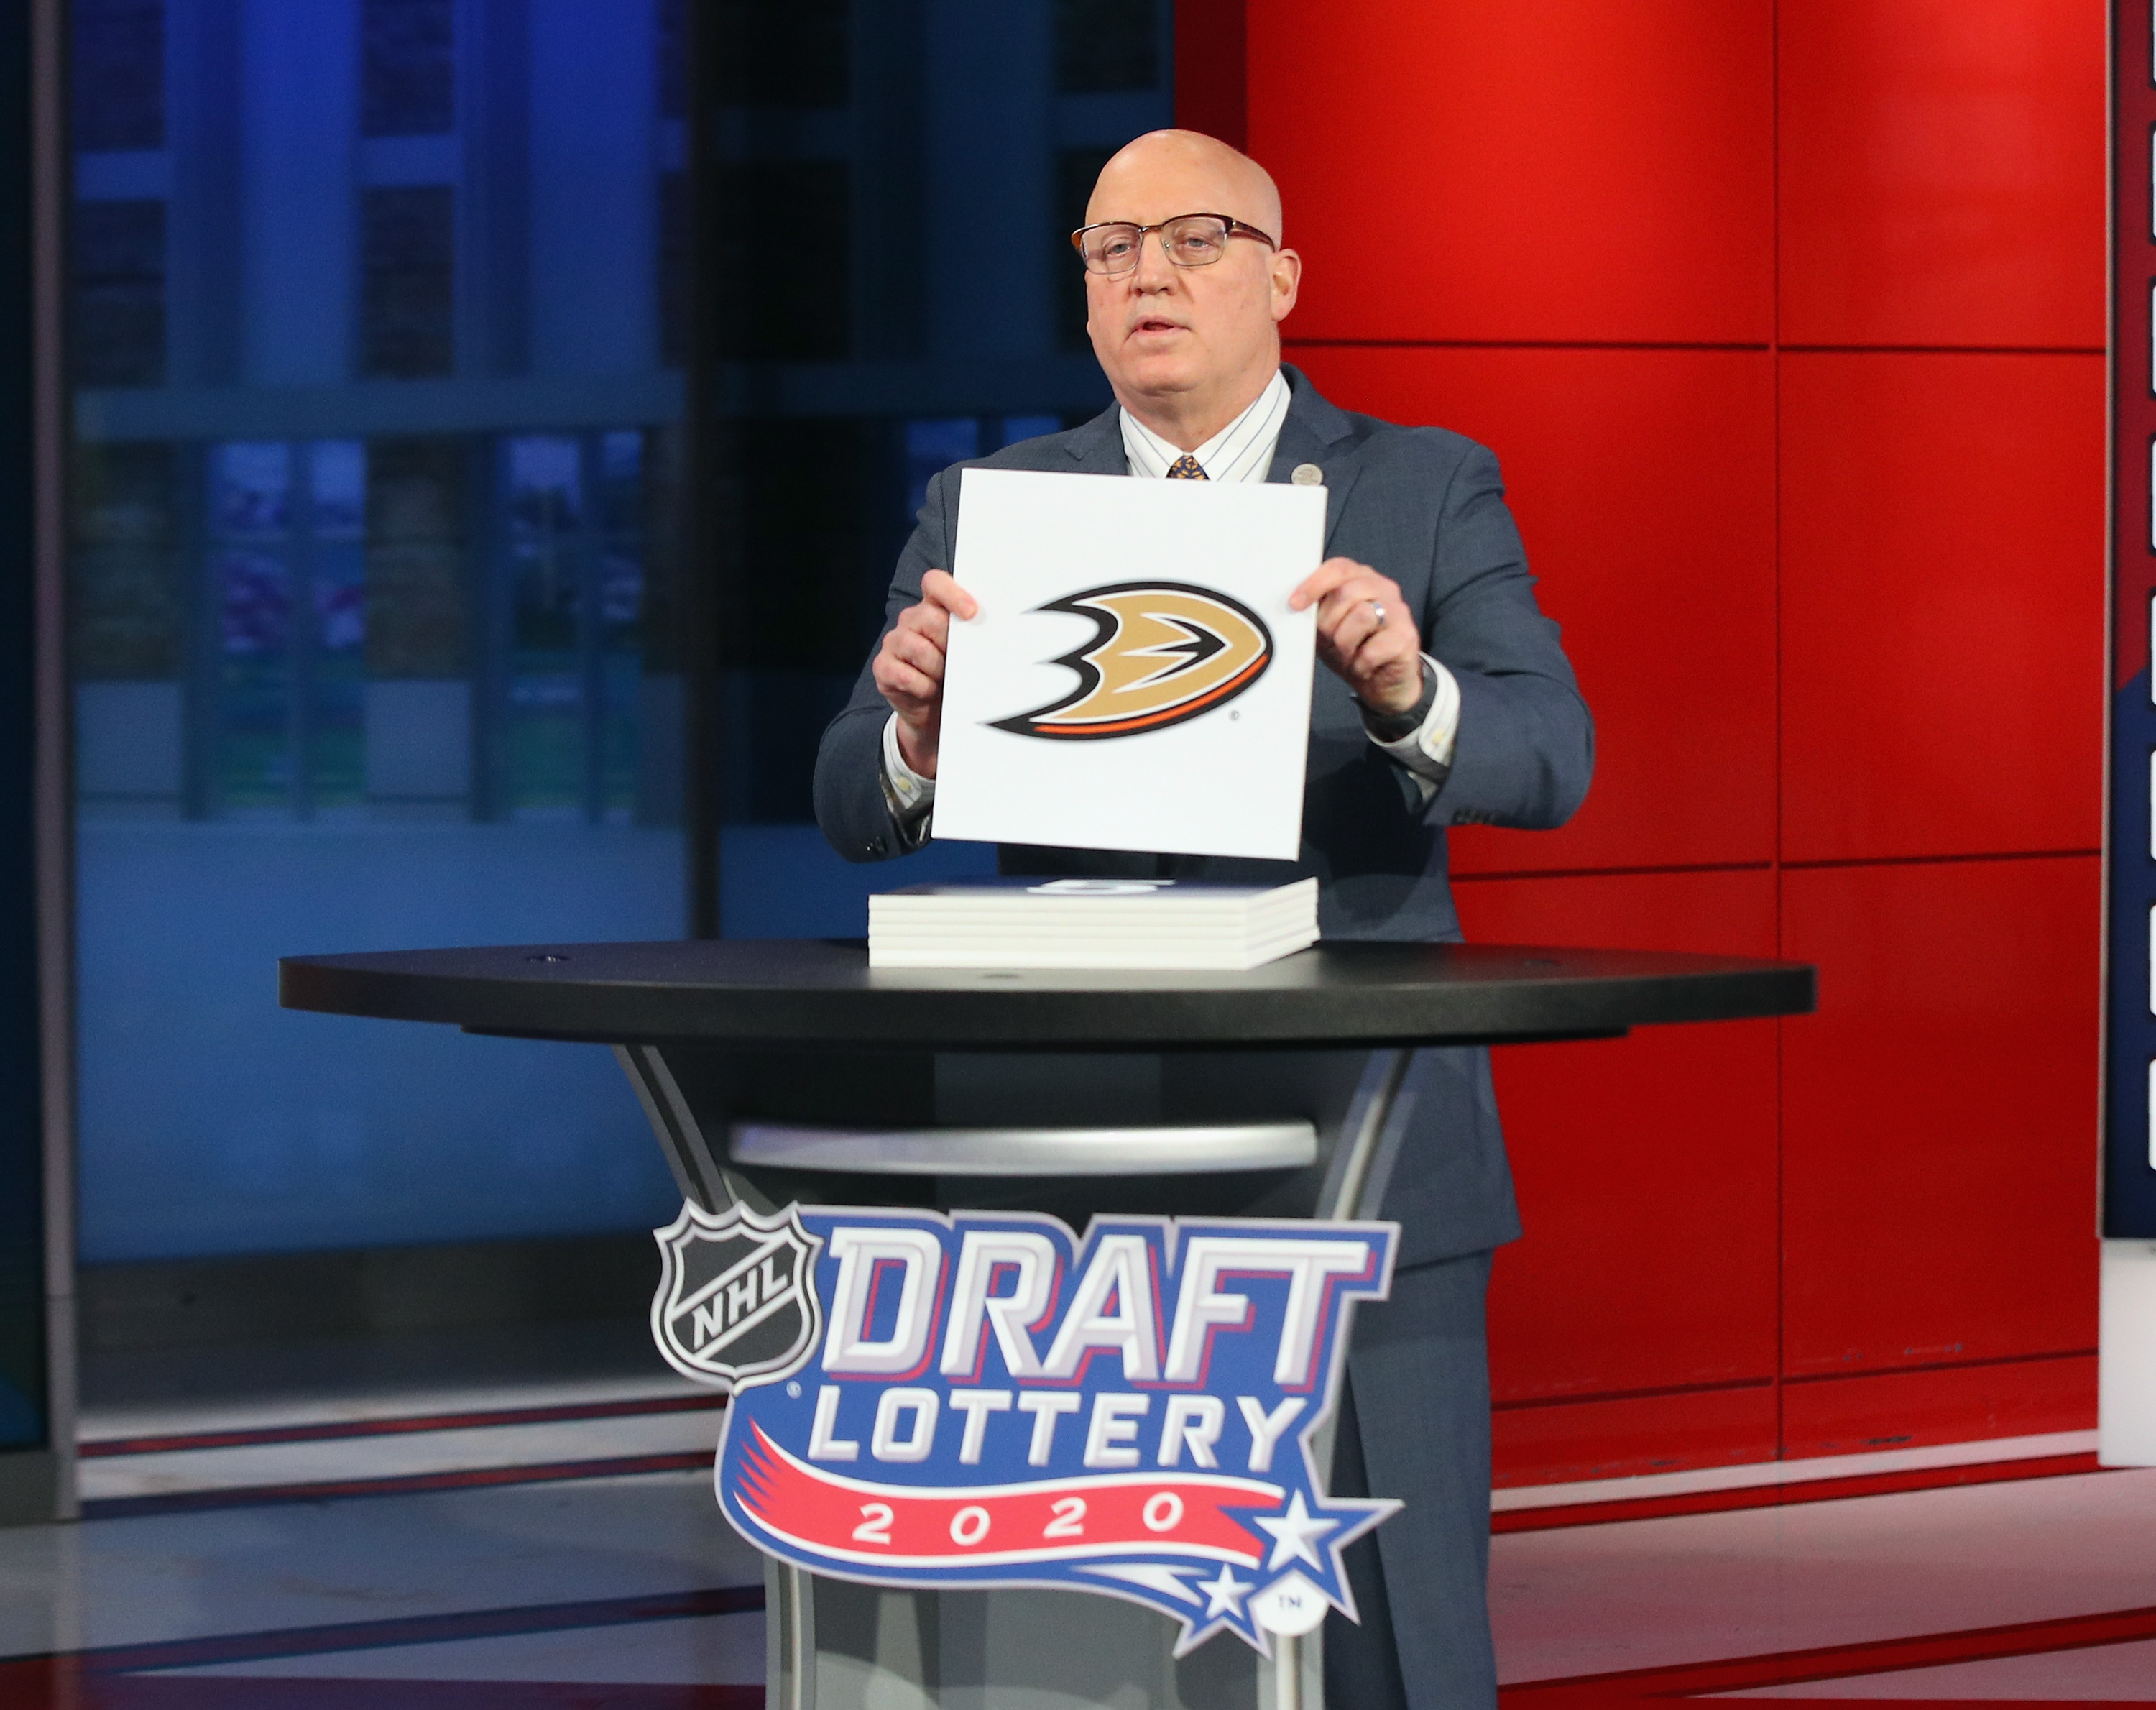 SECAUCUS, NEW JERSEY - JUNE 26: National Hockey League Deputy Commissioner Bill Daly announces the Anaheim Ducks draft position during Phase 1 of the 2020 NHL Draft Lottery on June 26, 2020 at the NHL Network's studio in Secaucus, New Jersey.